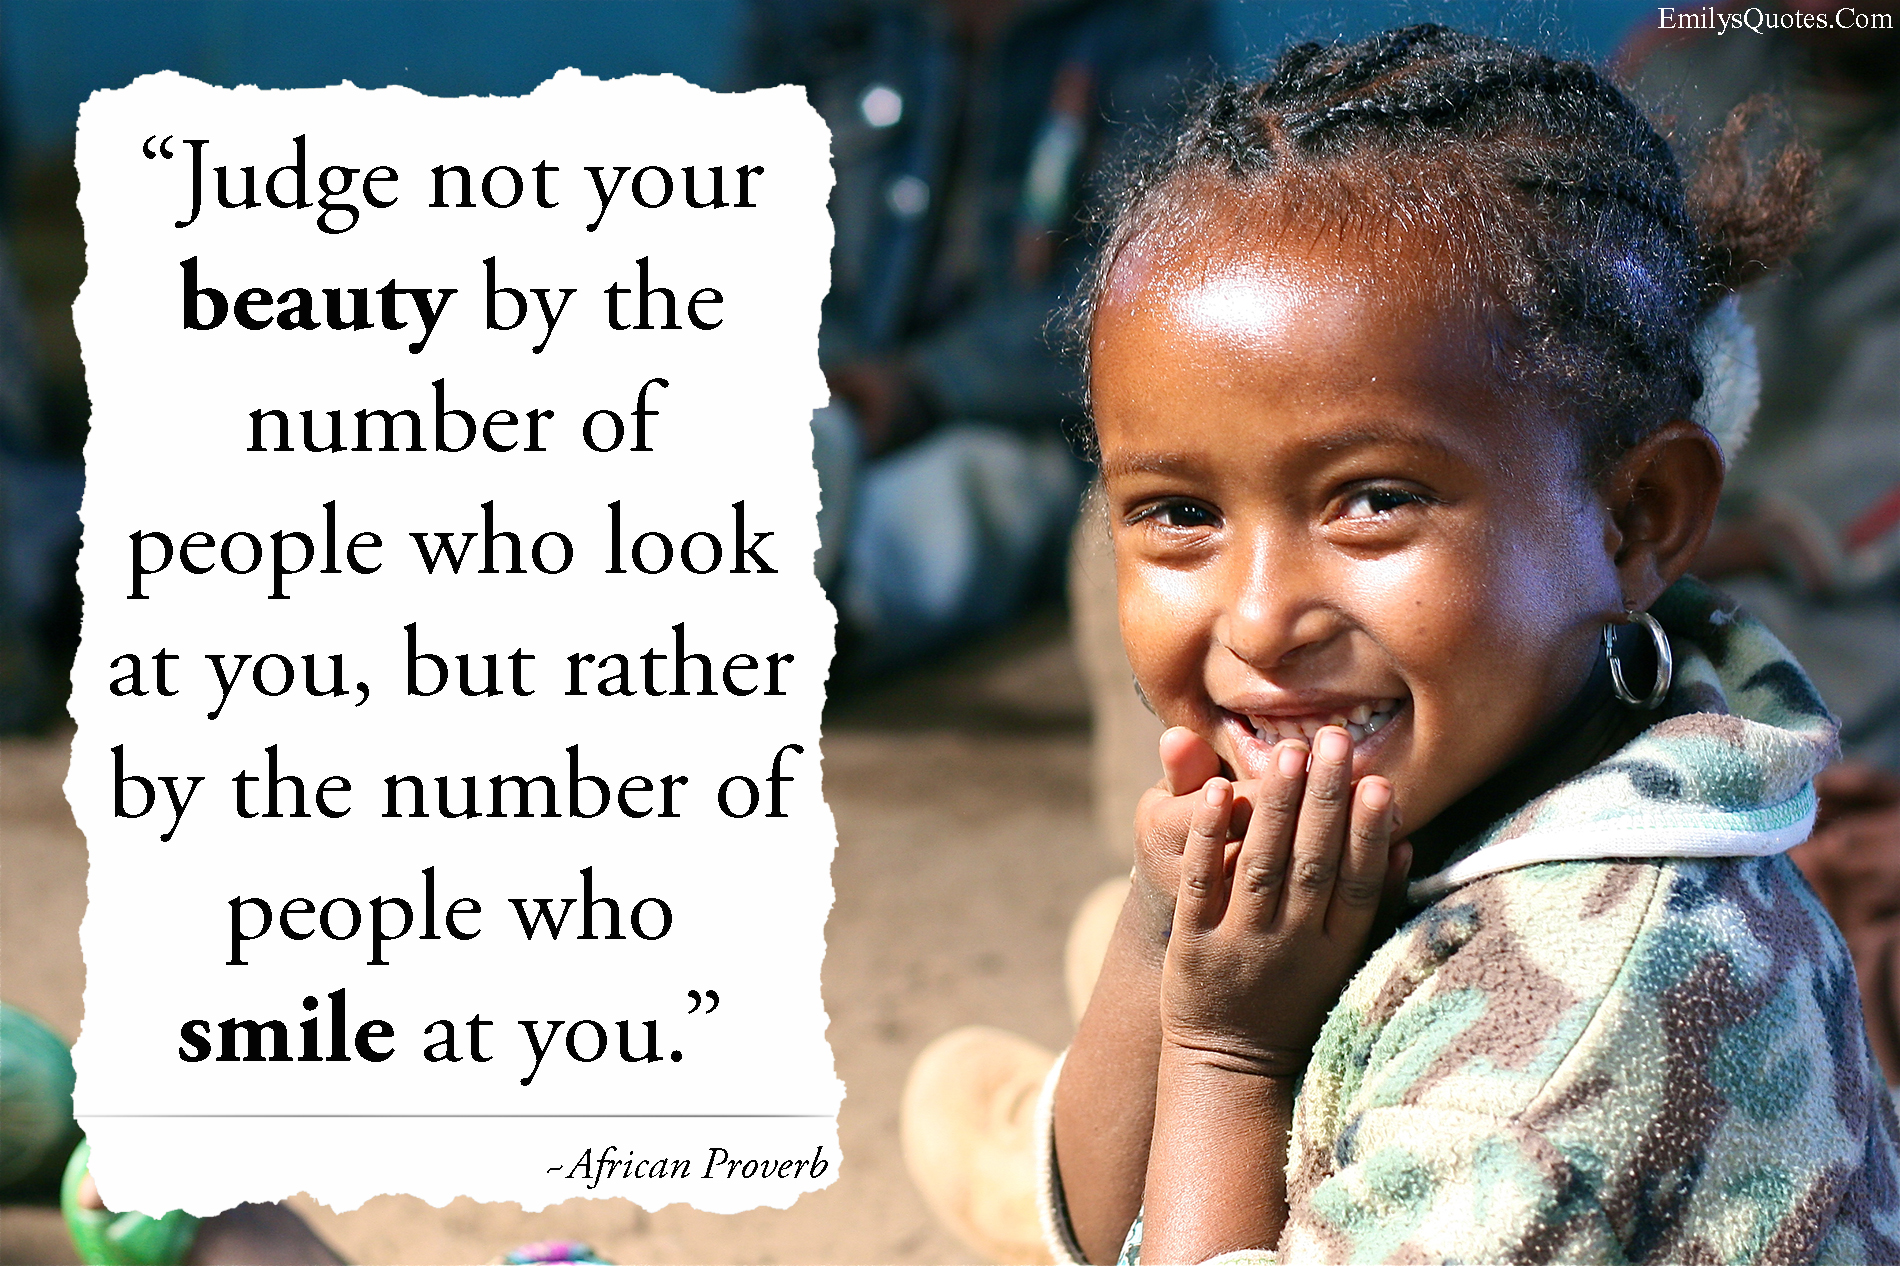 EmilysQuotes.Com - judge, beauty, people, smile, wisdom, African Proverb